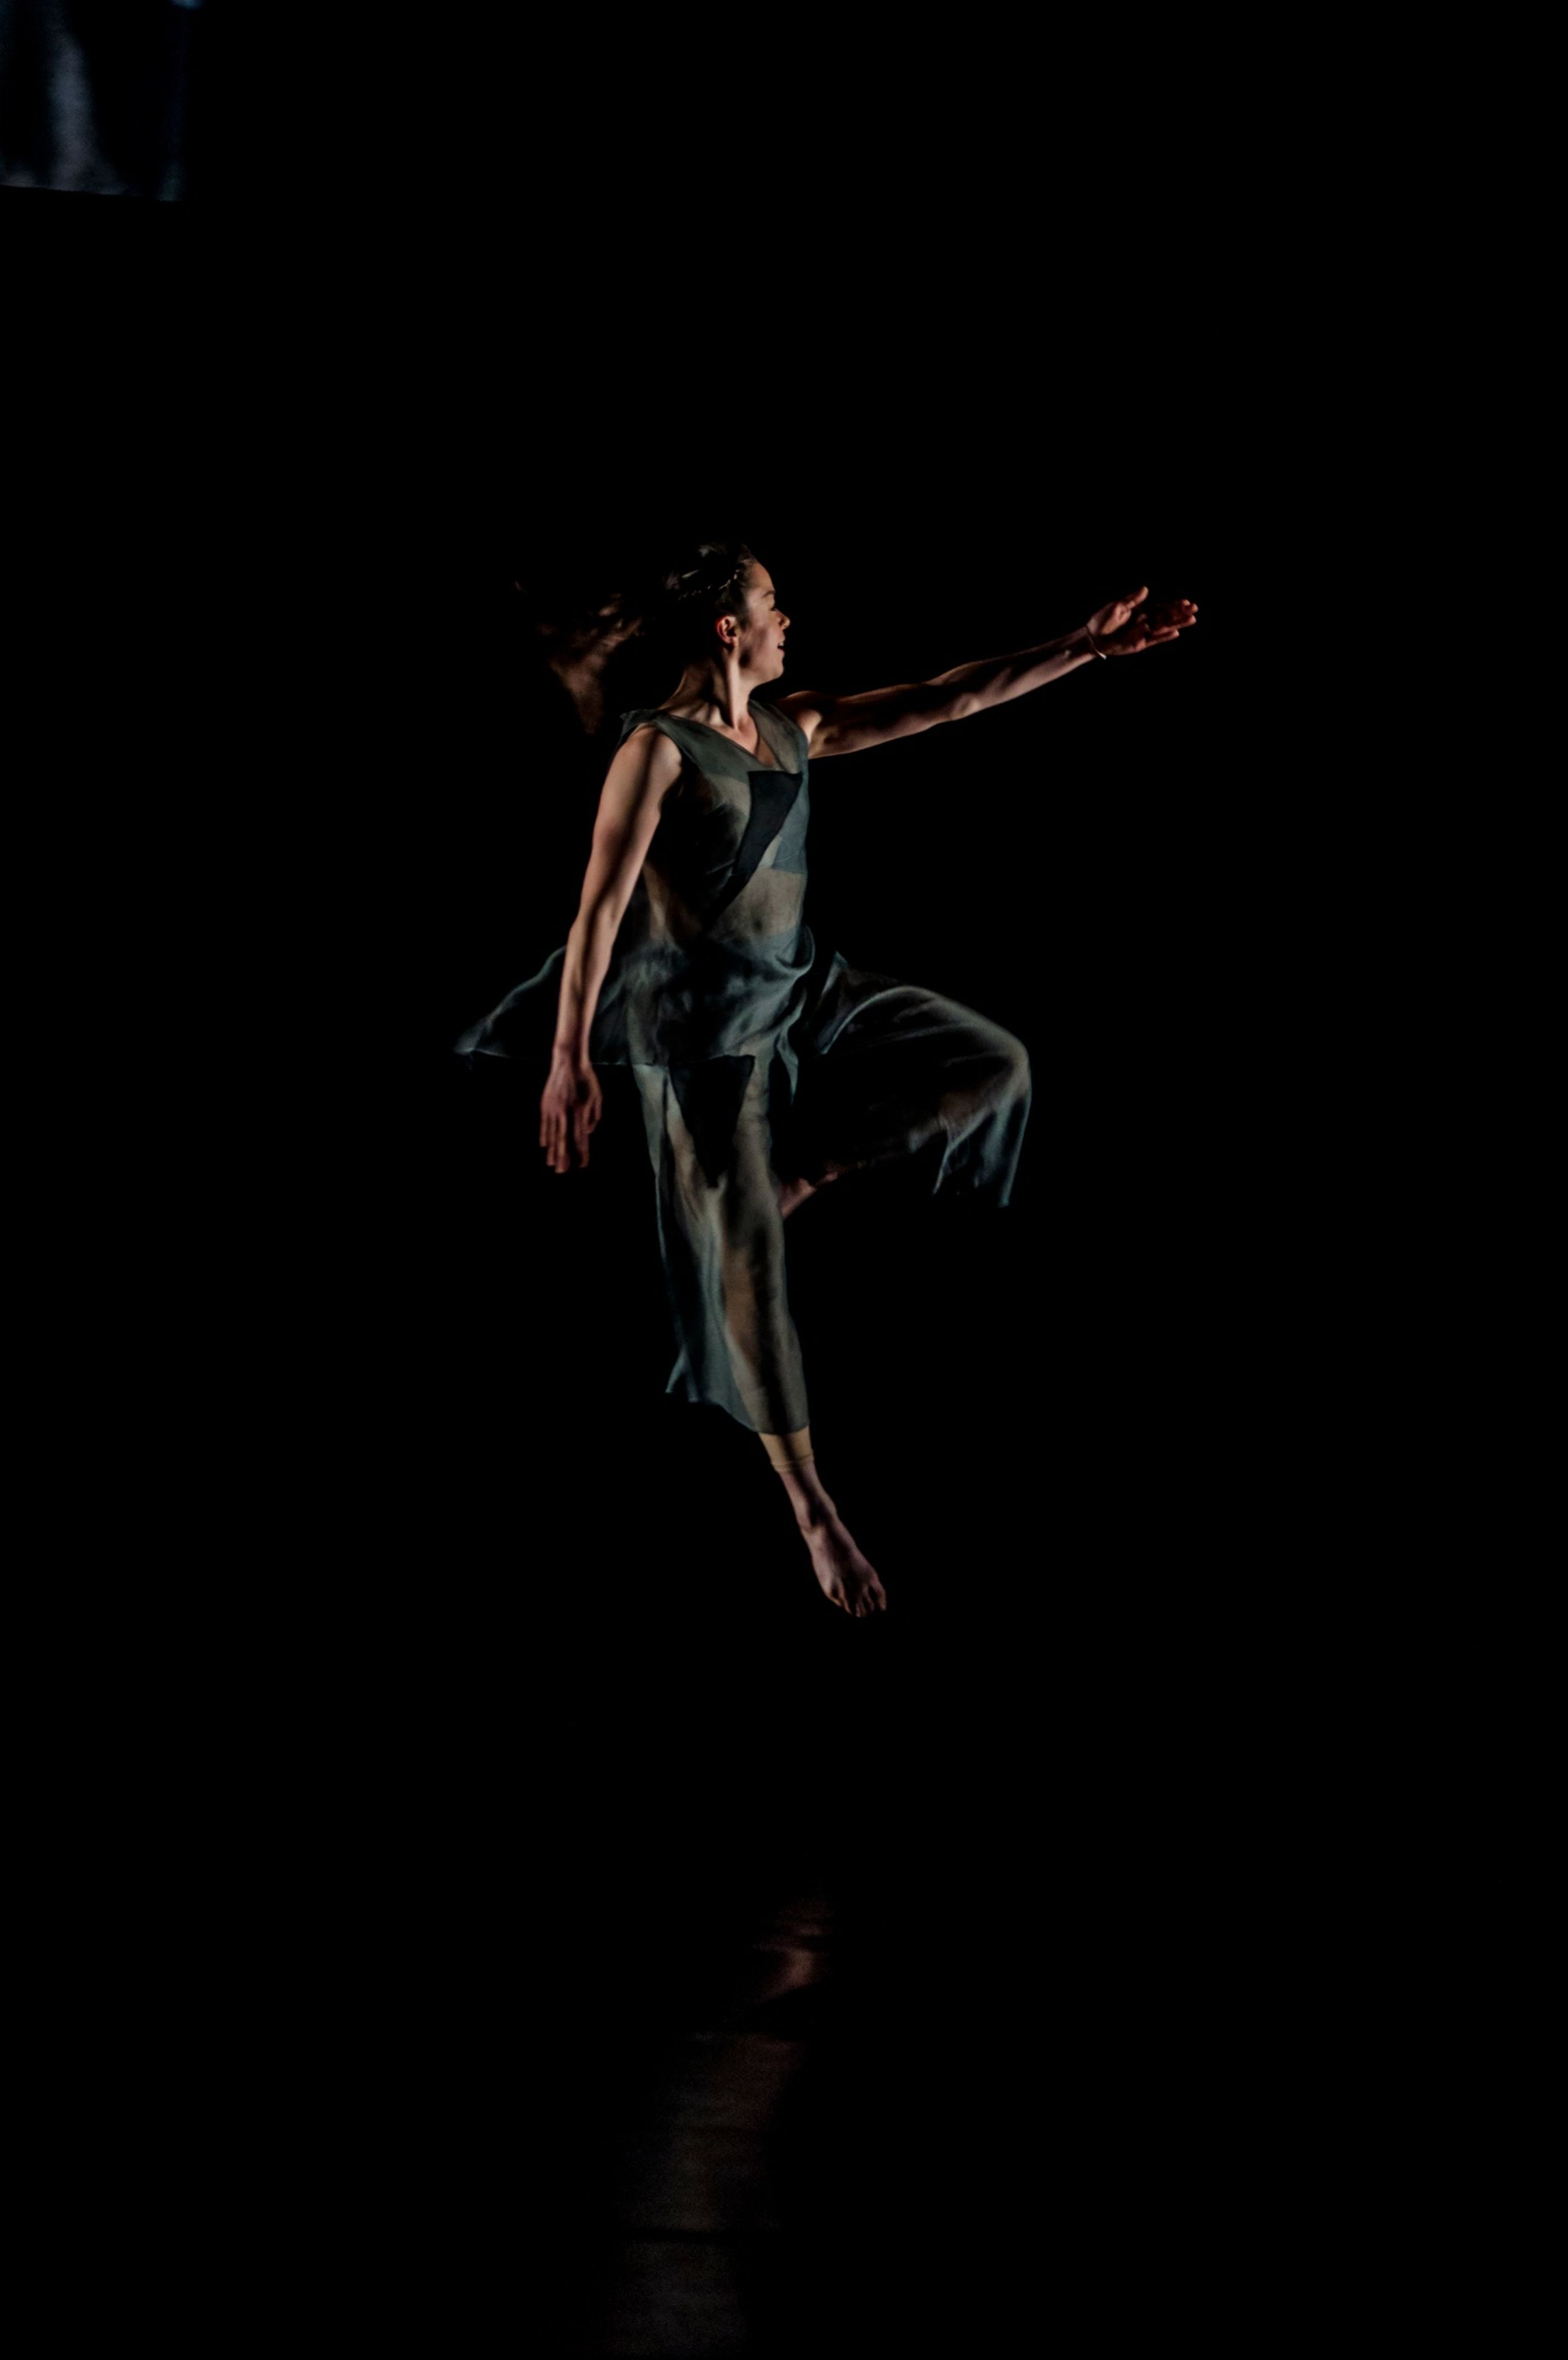 full length, night, lifestyles, leisure activity, studio shot, black background, copy space, motion, young adult, skill, standing, holding, front view, jumping, casual clothing, side view, vitality, performance